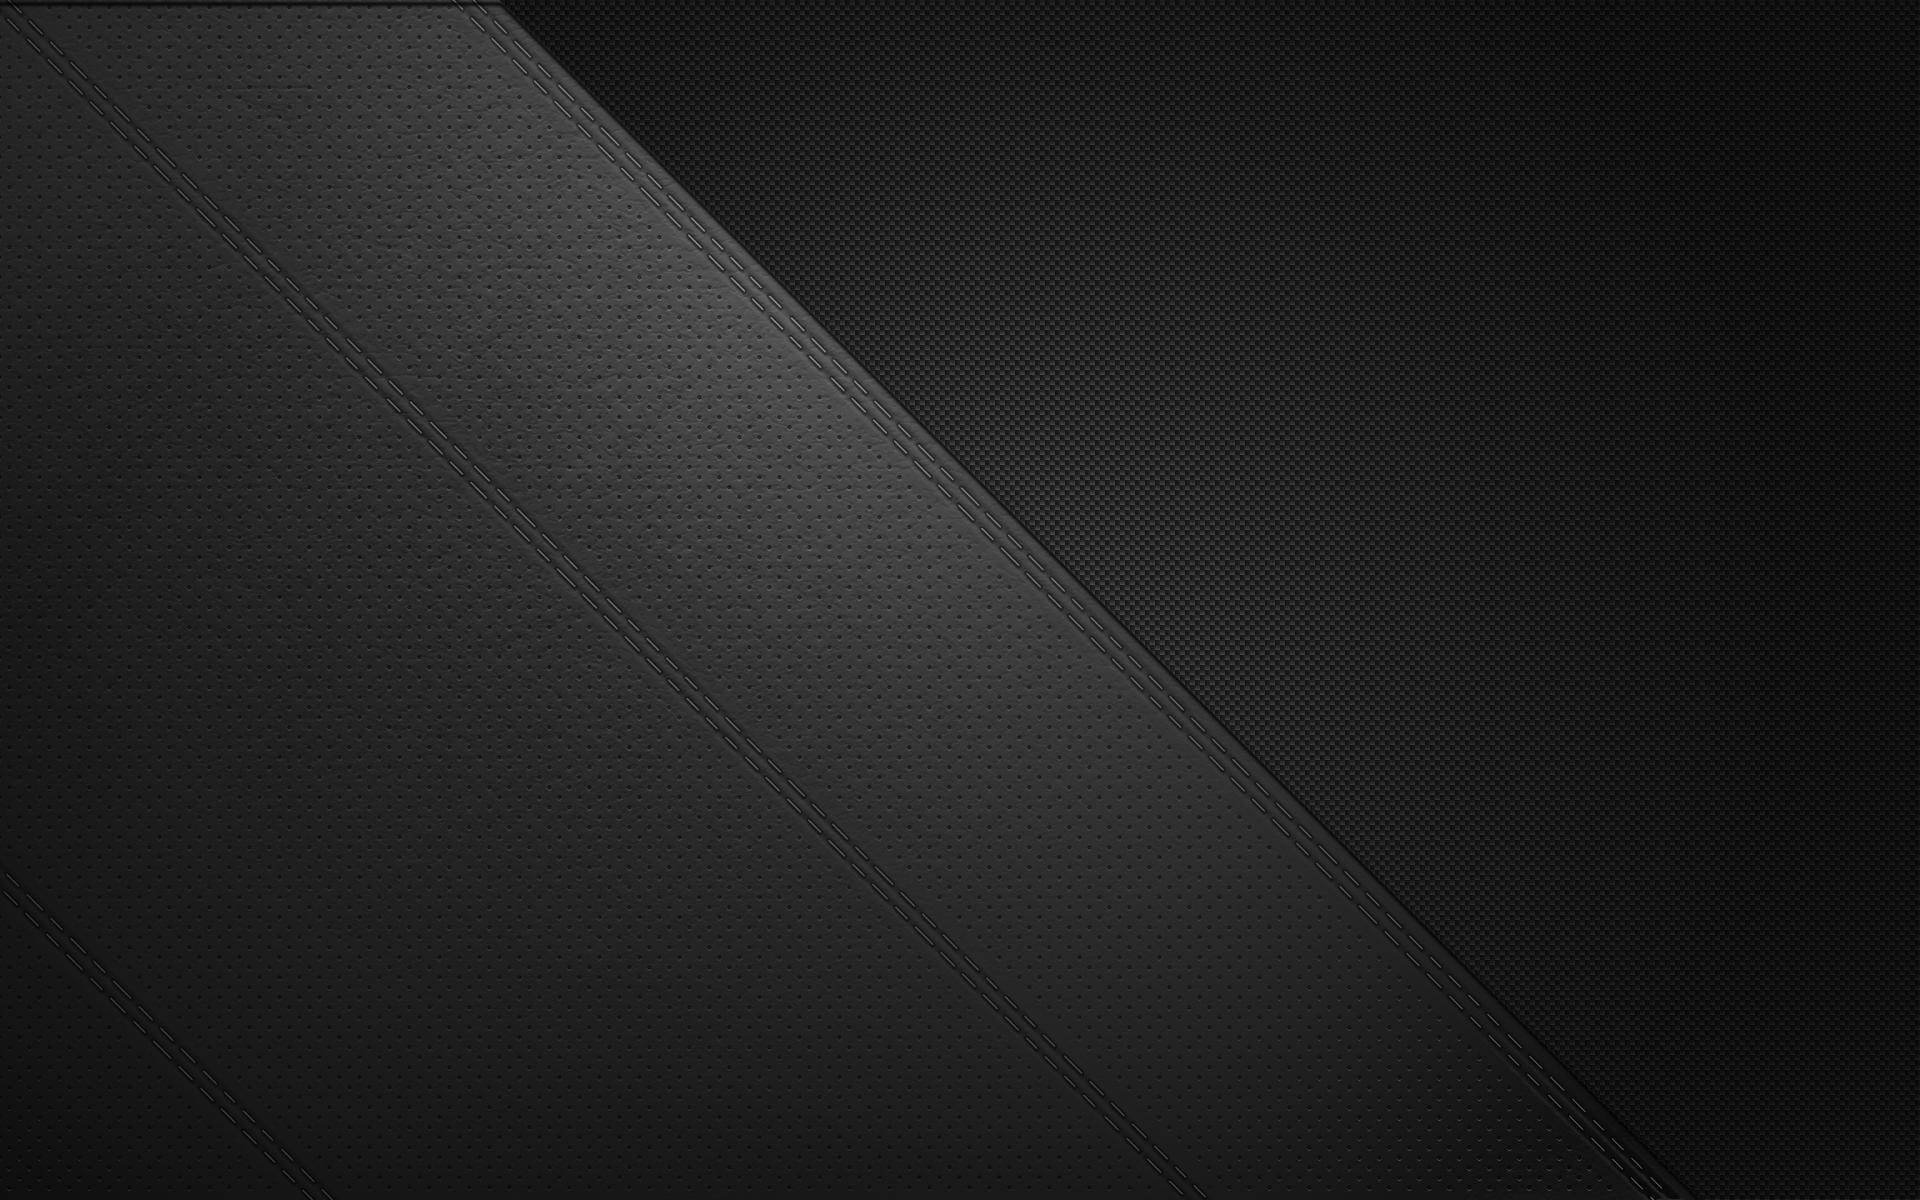 1920x1200 Simple Abstract Black Wallpaper